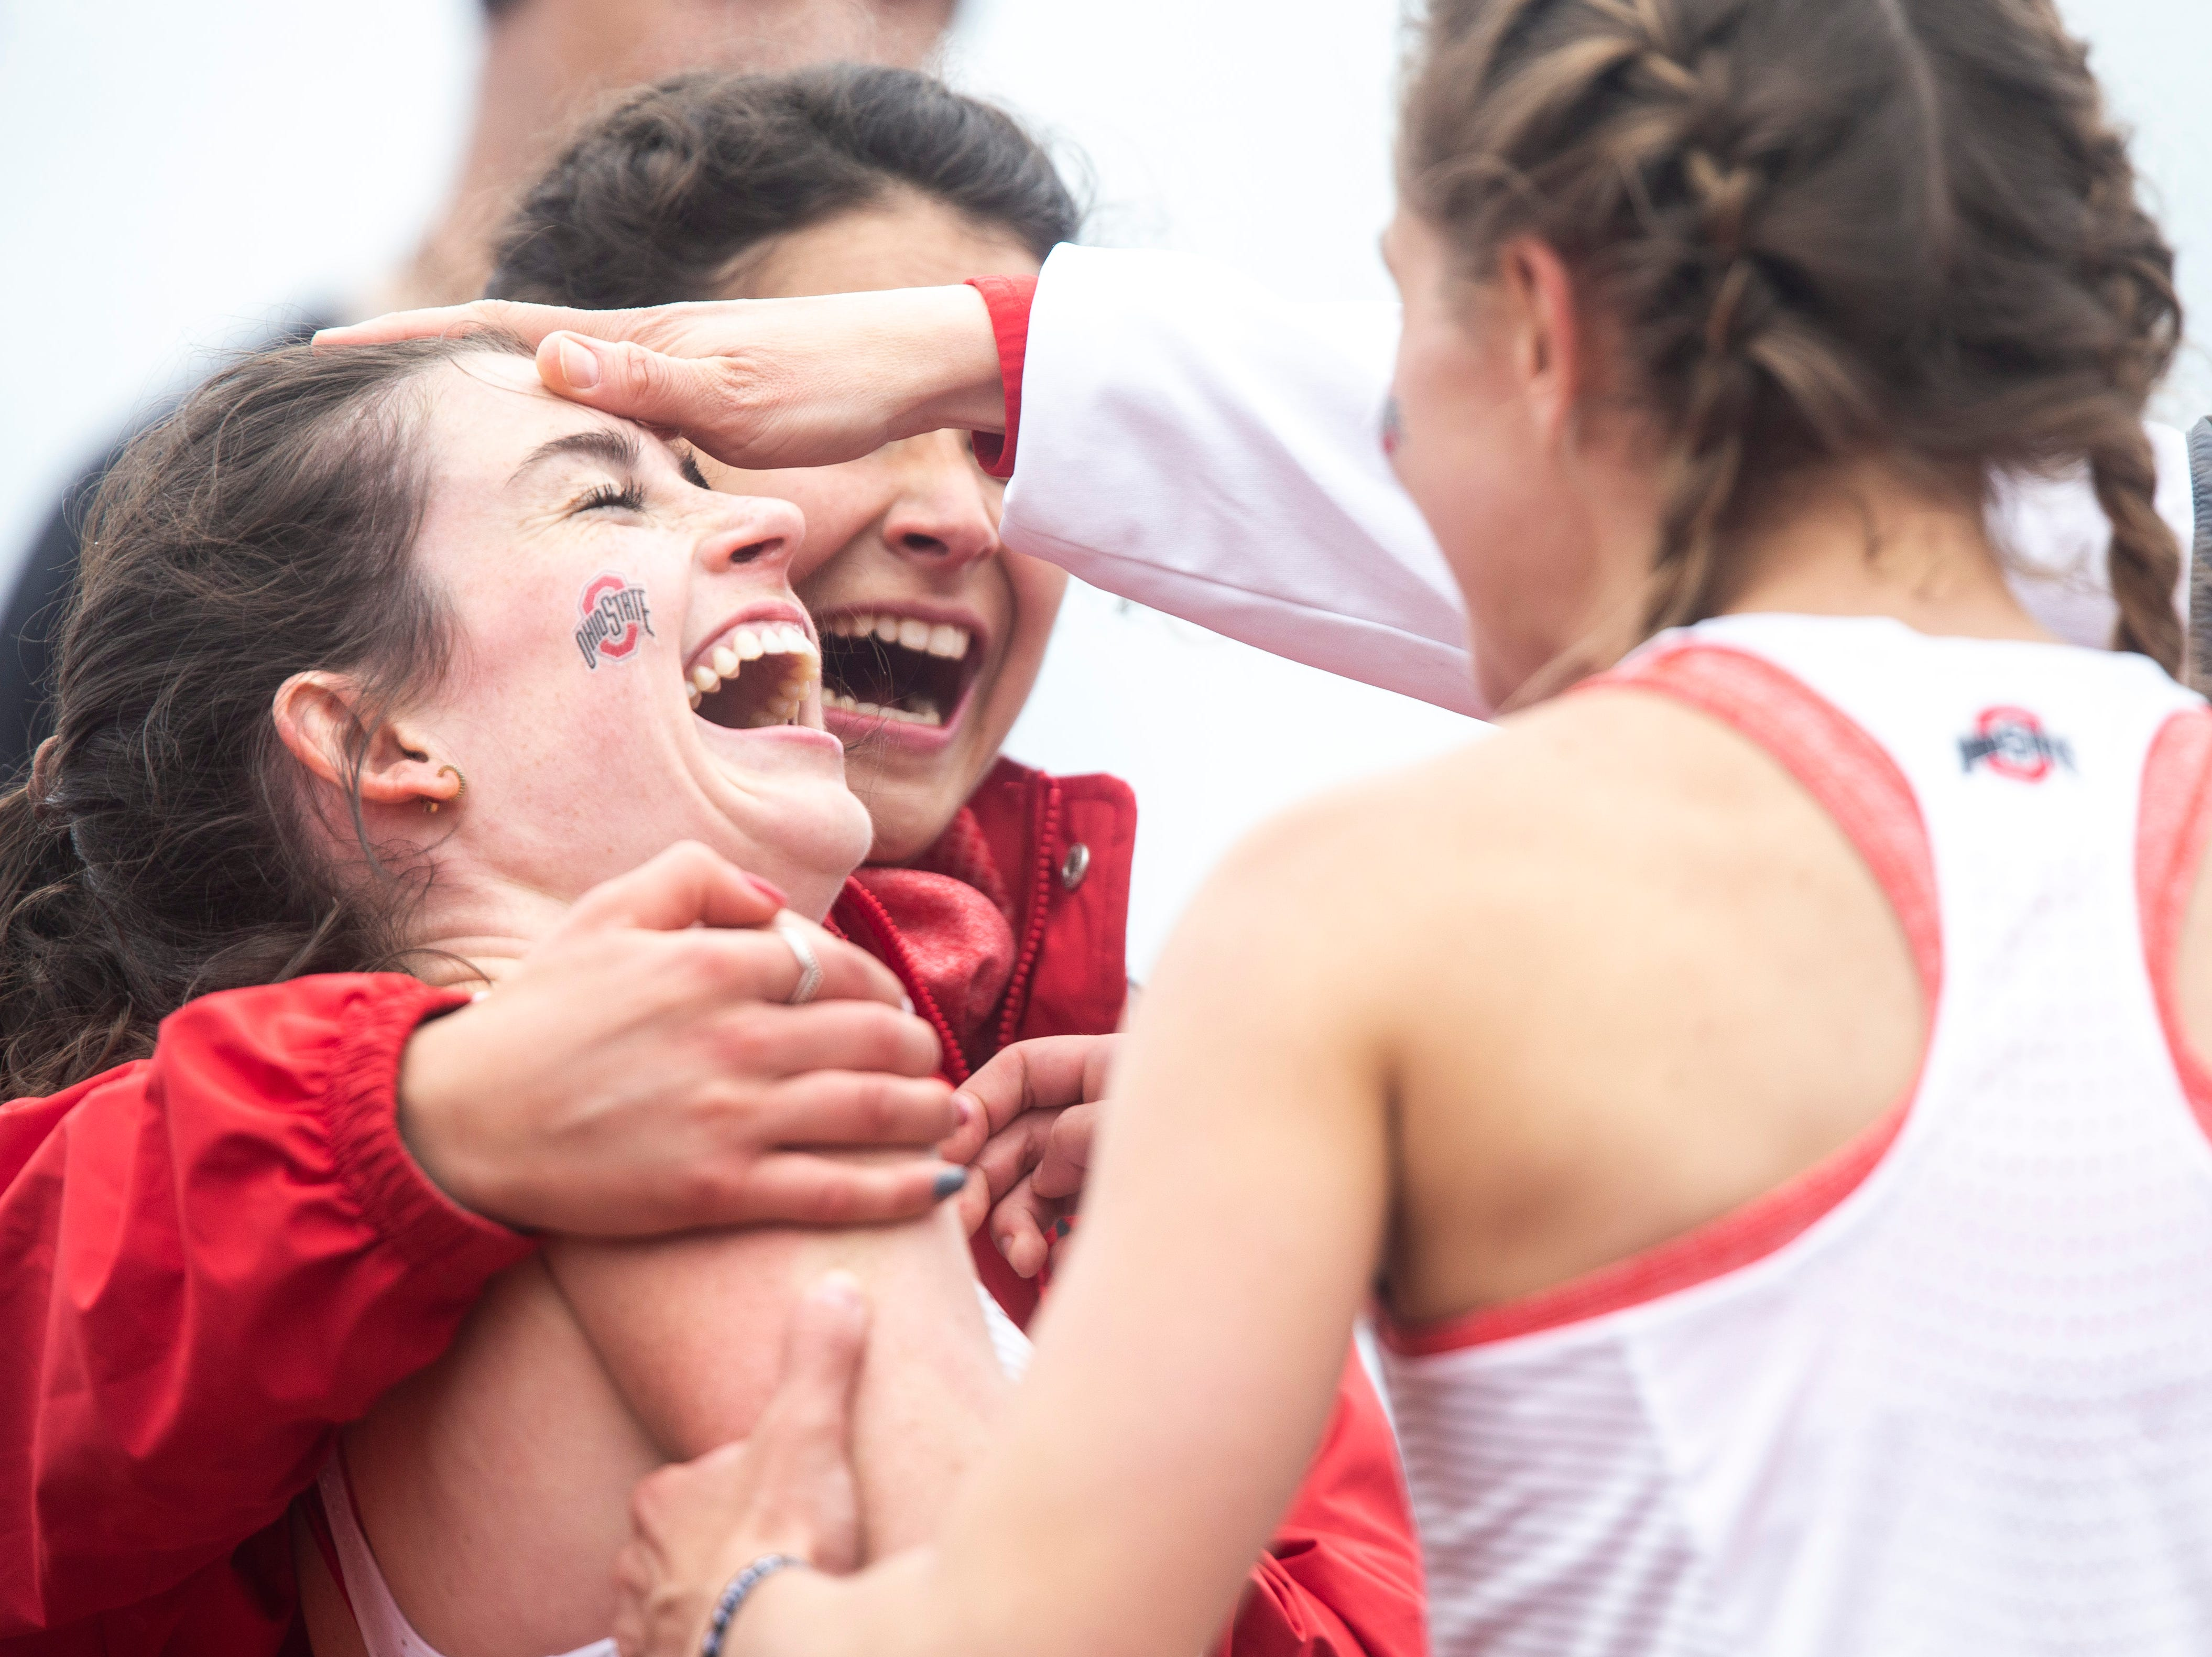 Ohio State sophomore Abby Nichols gets embraced by teammates after crossing the finish line in the 5,000 meter finals during the final day of Big Ten track and field outdoor championships, Sunday, May 12, 2019, at Francis X. Cretzmeyer Track on the University of Iowa campus in Iowa City, Iowa. Nichols finished first, with a time of 15:56.52, setting a school record.